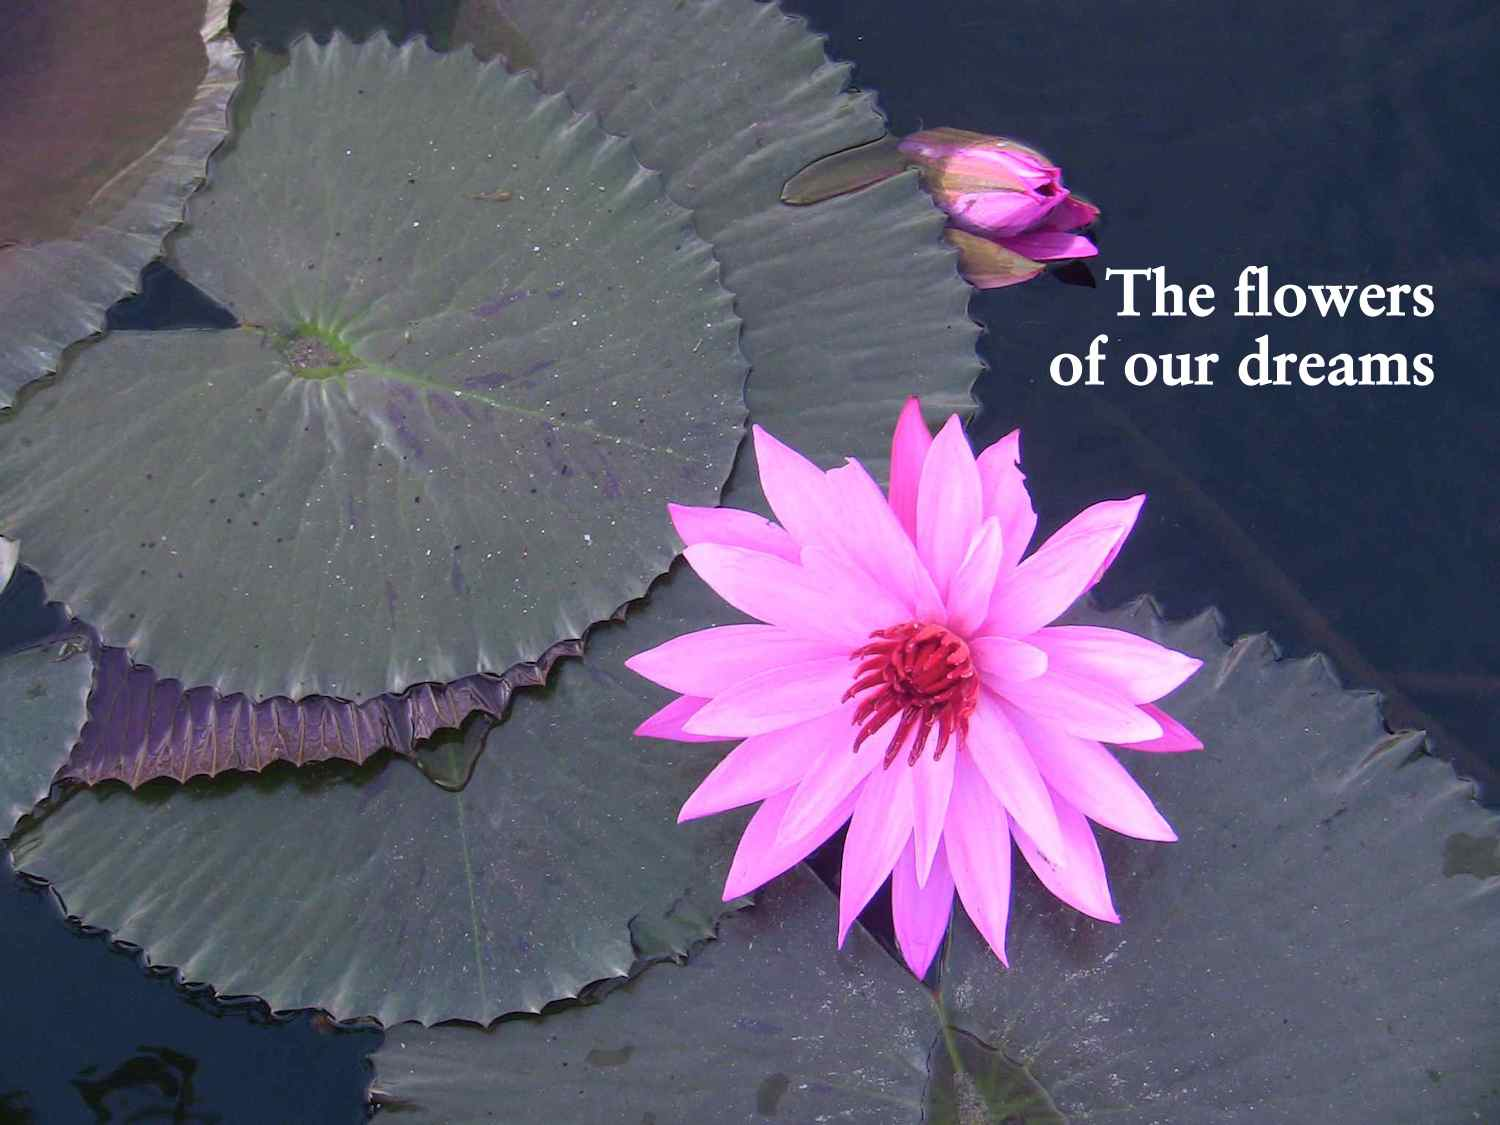 the flowers of our dreams